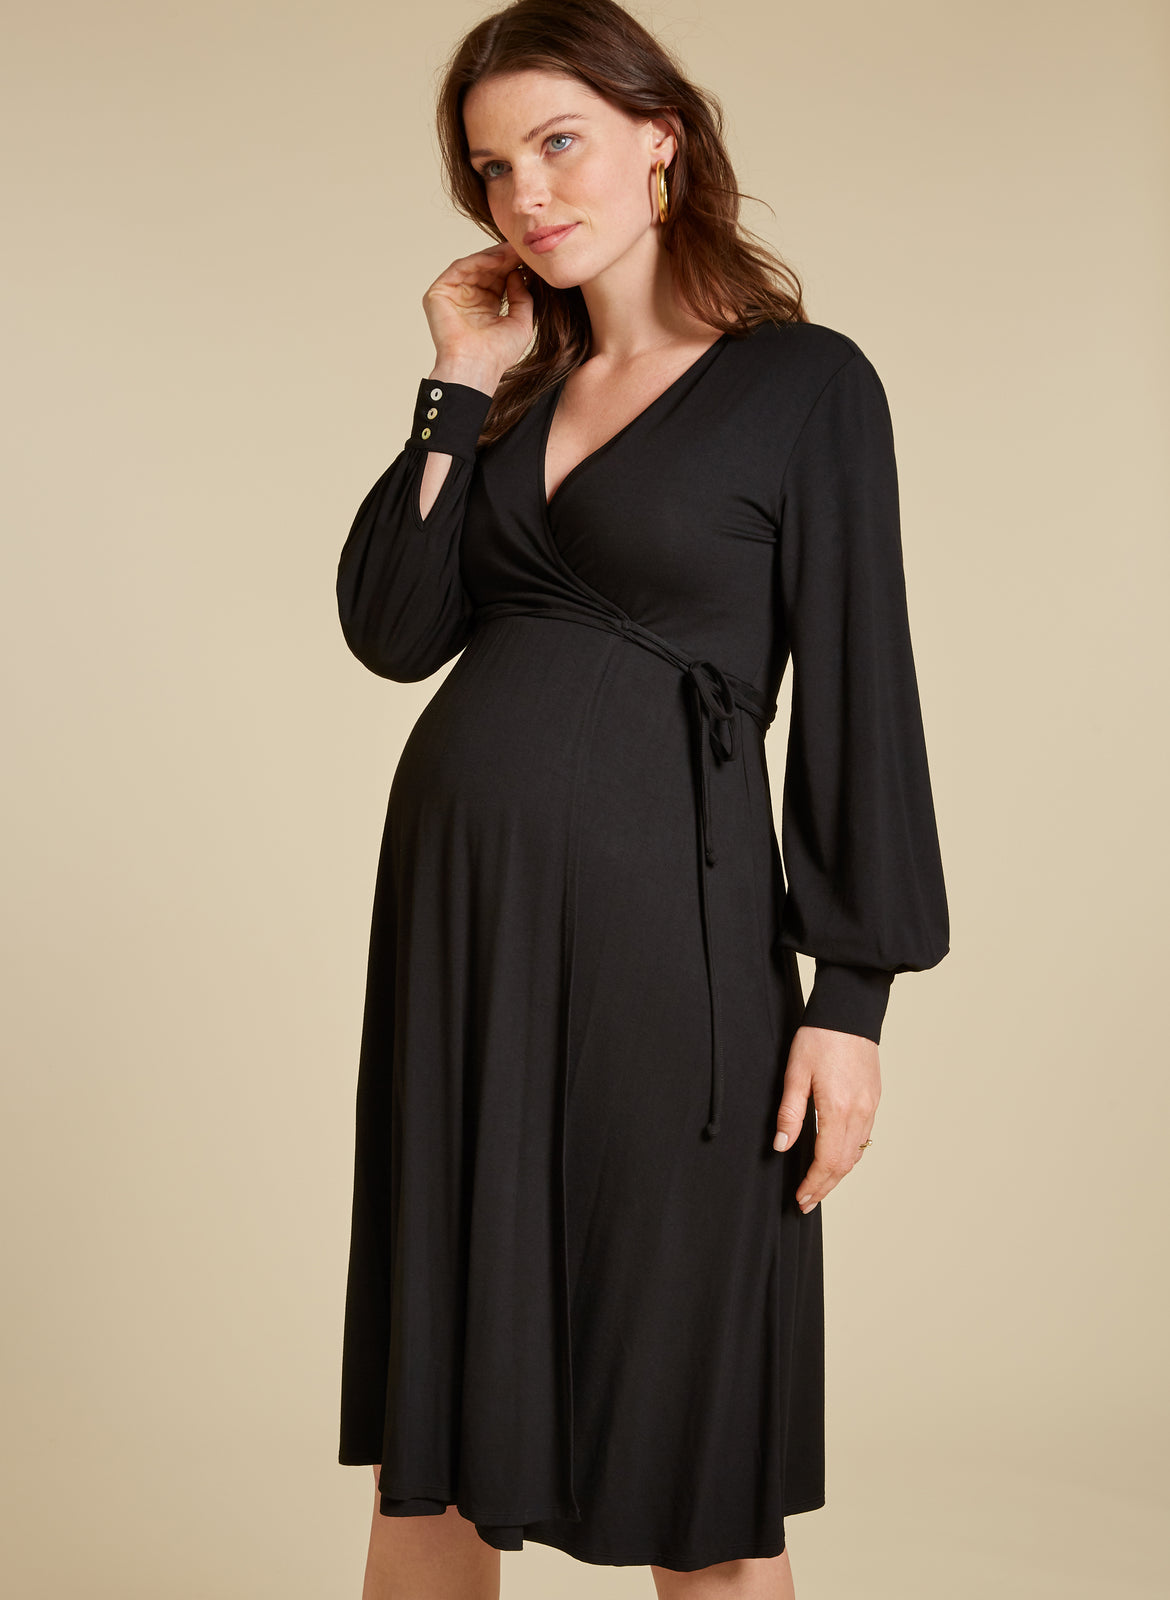 4a46ddee780ba Romola Maternity Wrap Dress. $67 $169. Caviar Black